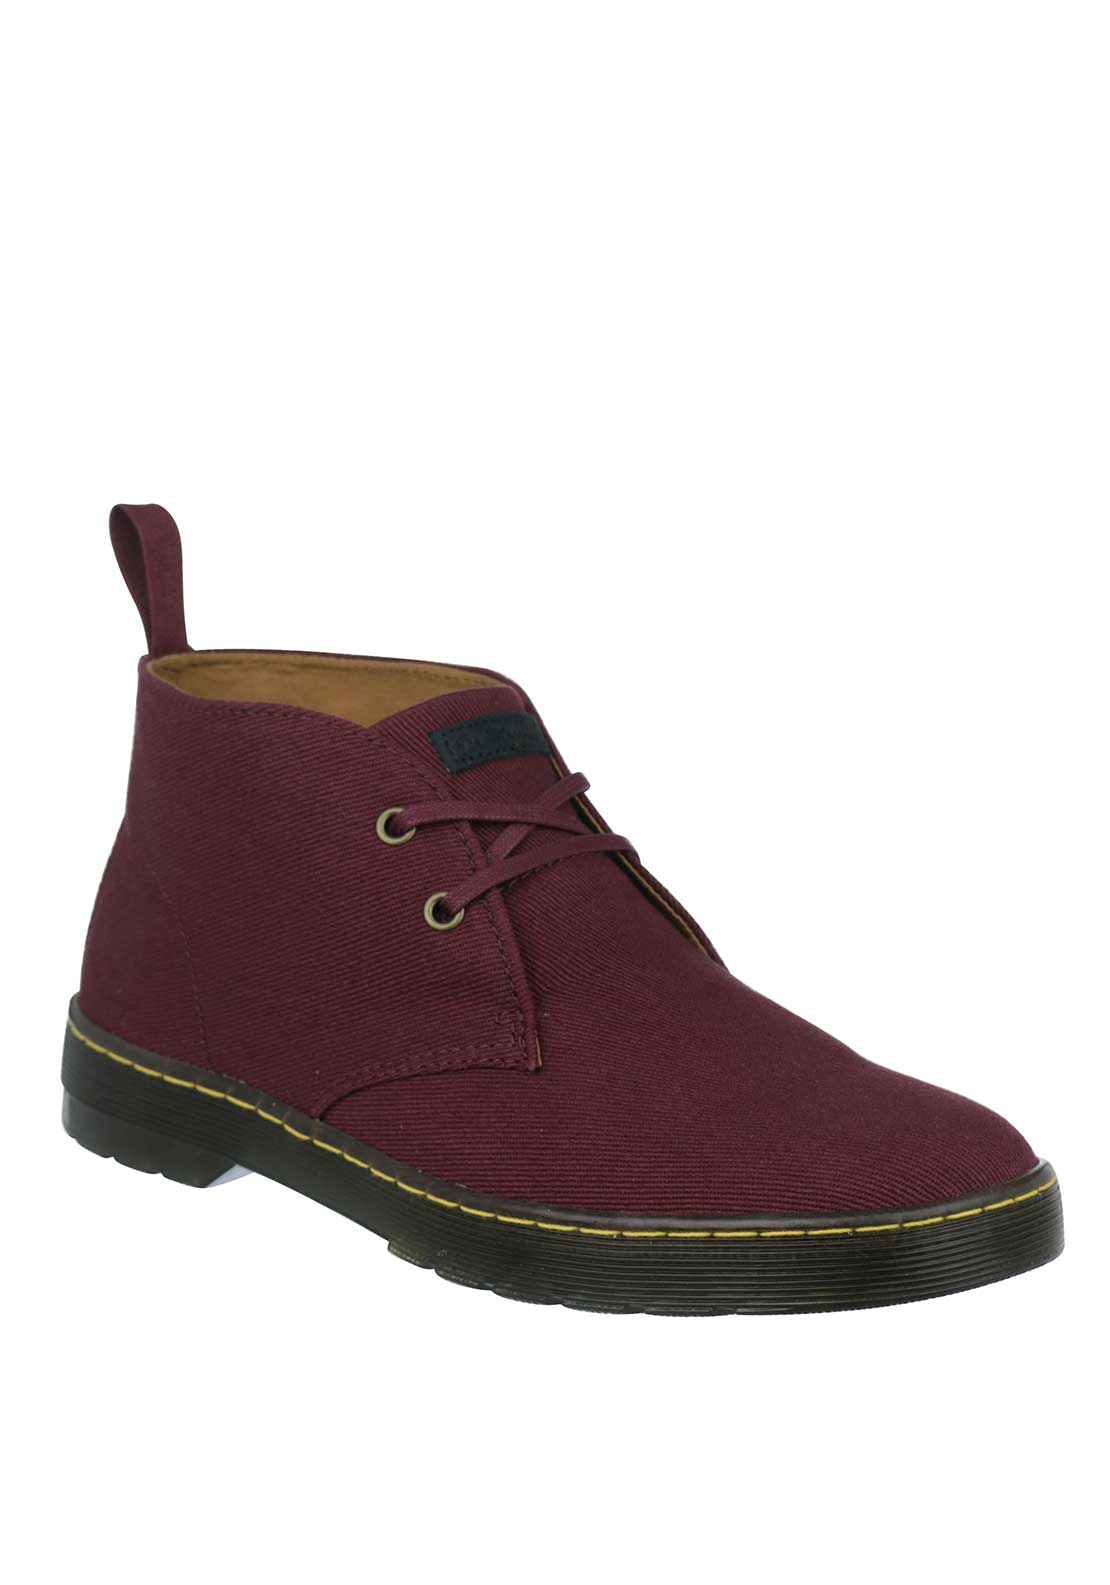 Dr. Martens Mens Mayport Twill Canvas Desert Boot, Oxblood